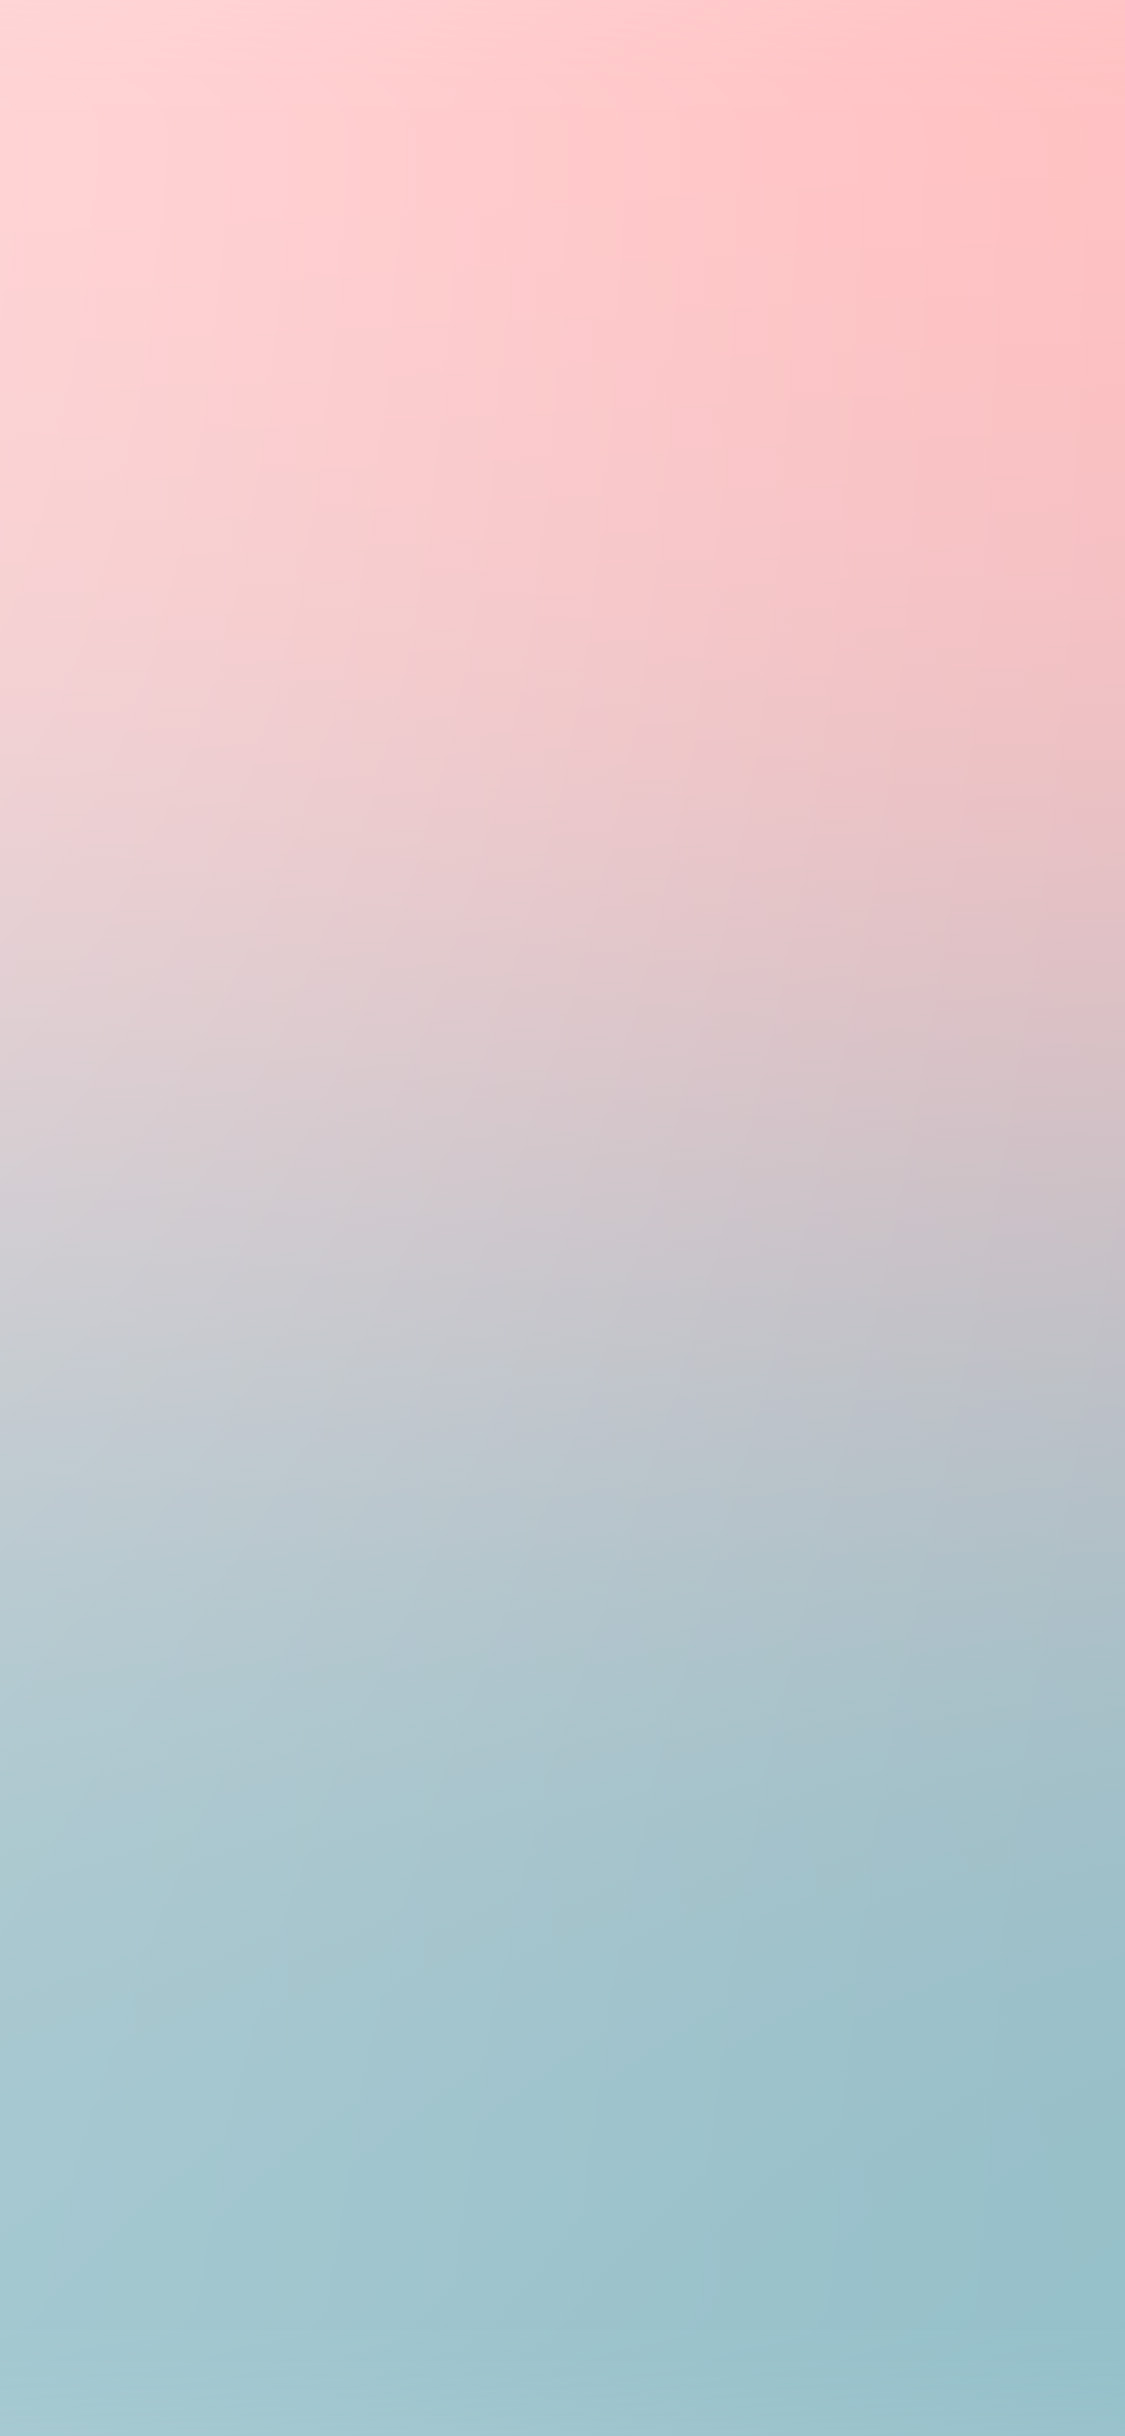 Sm07 Pink Blue Soft Pastel Blur Gradation Wallpaper